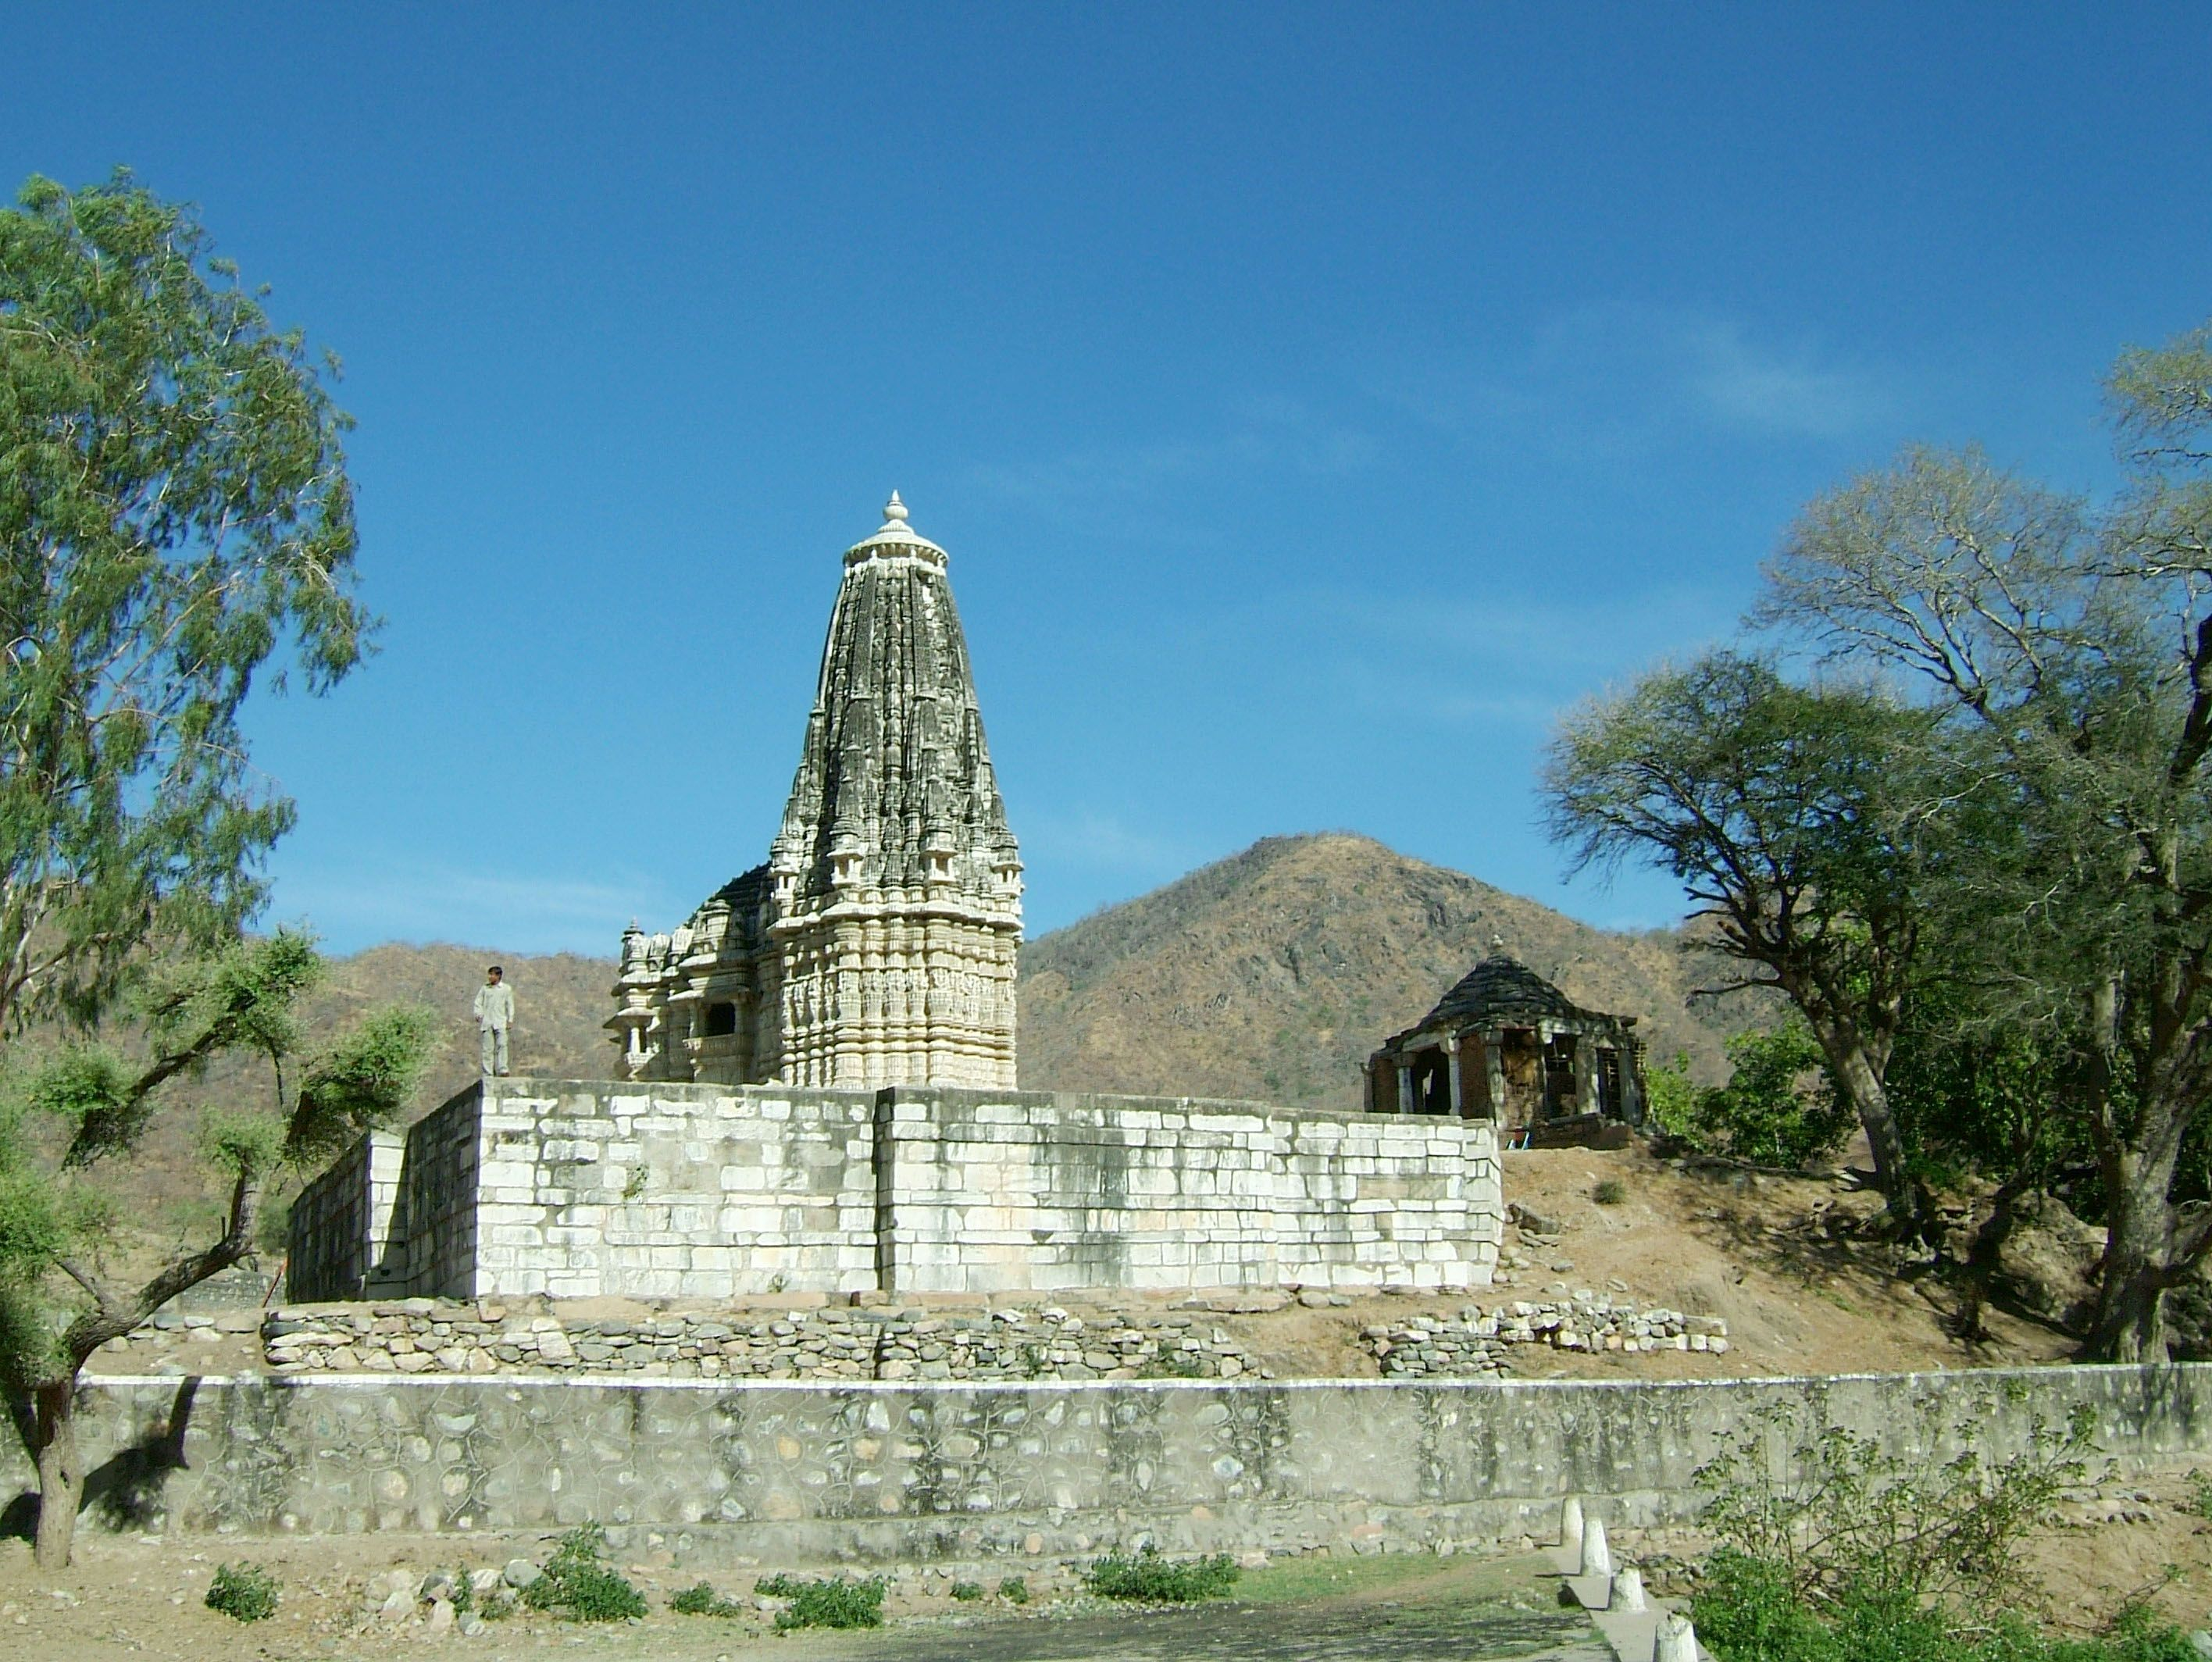 Sun Temple, maintained by Royals of Udaipur, Ranakpur, Pali district, India Date: 12 March 2004 Photo by Acred99